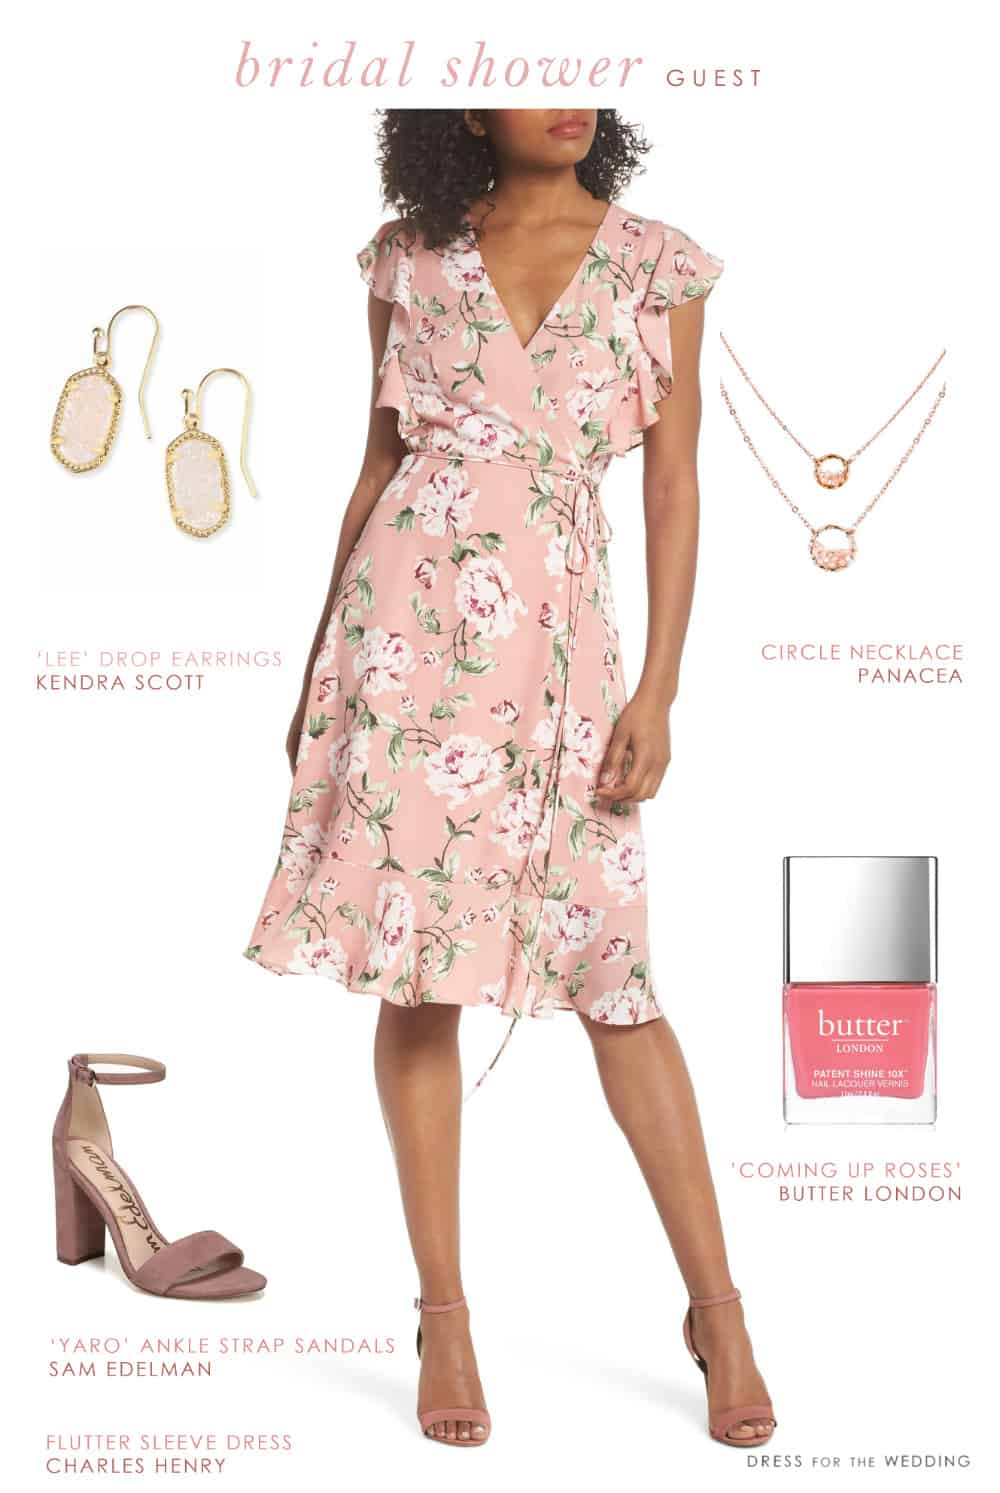 what should you wear to a bridal shower as a guest dress for the wedding